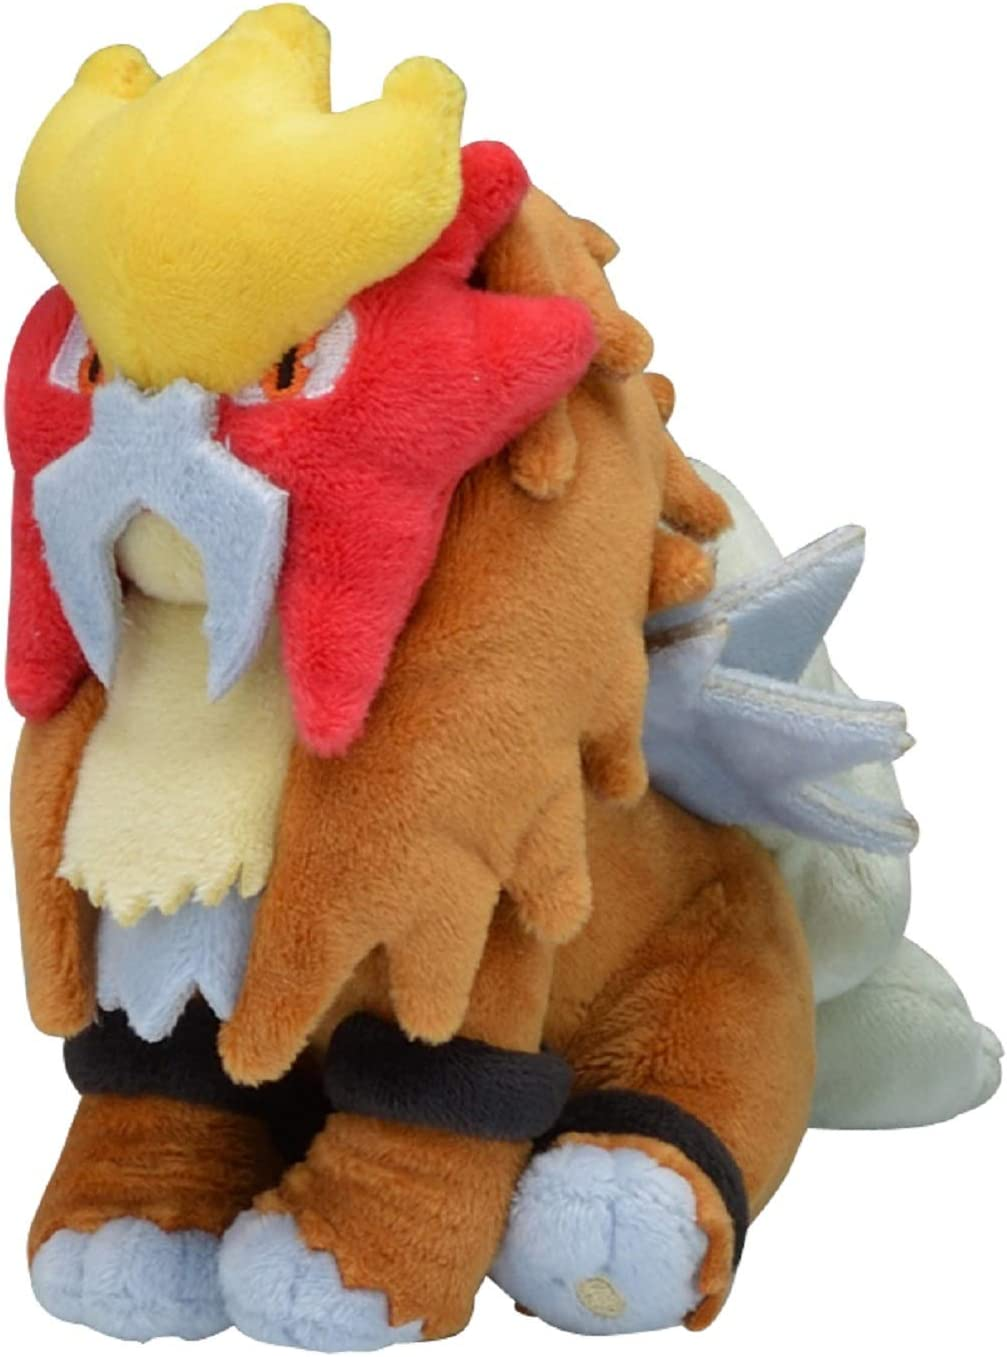 Sanei Pokemon All Star Series PP63 Entei Stuffed Plush  8/""